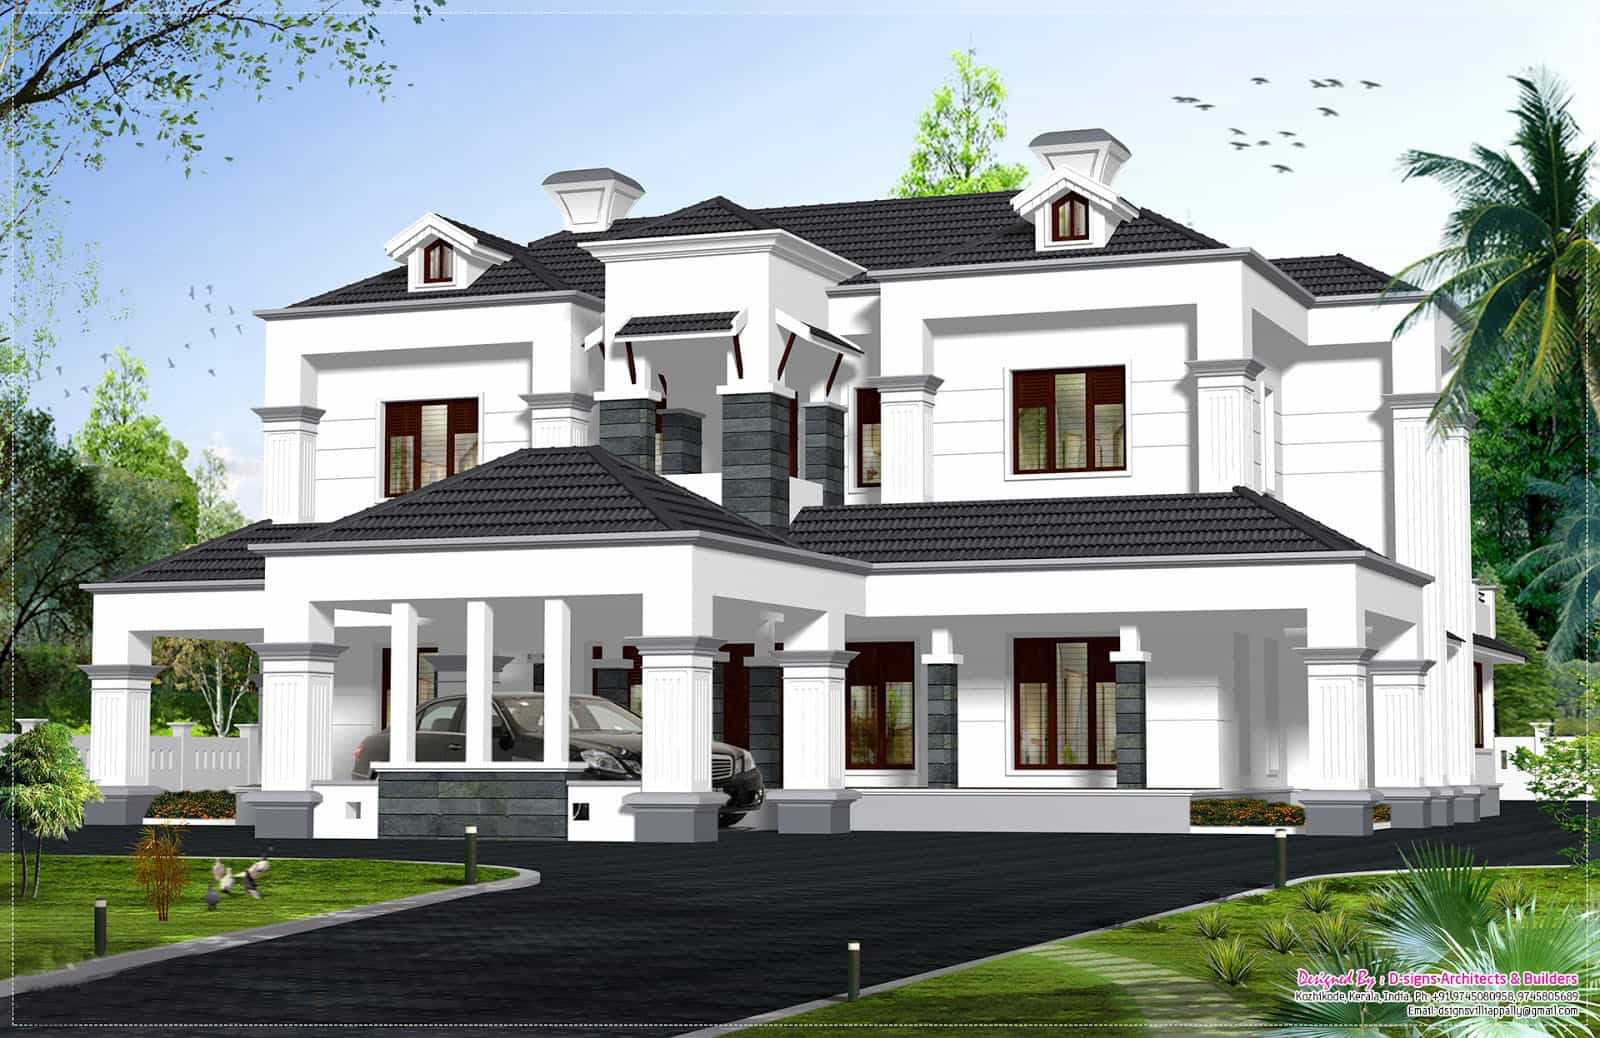 Kerala house plans keralahouseplanner for Kerala house photos